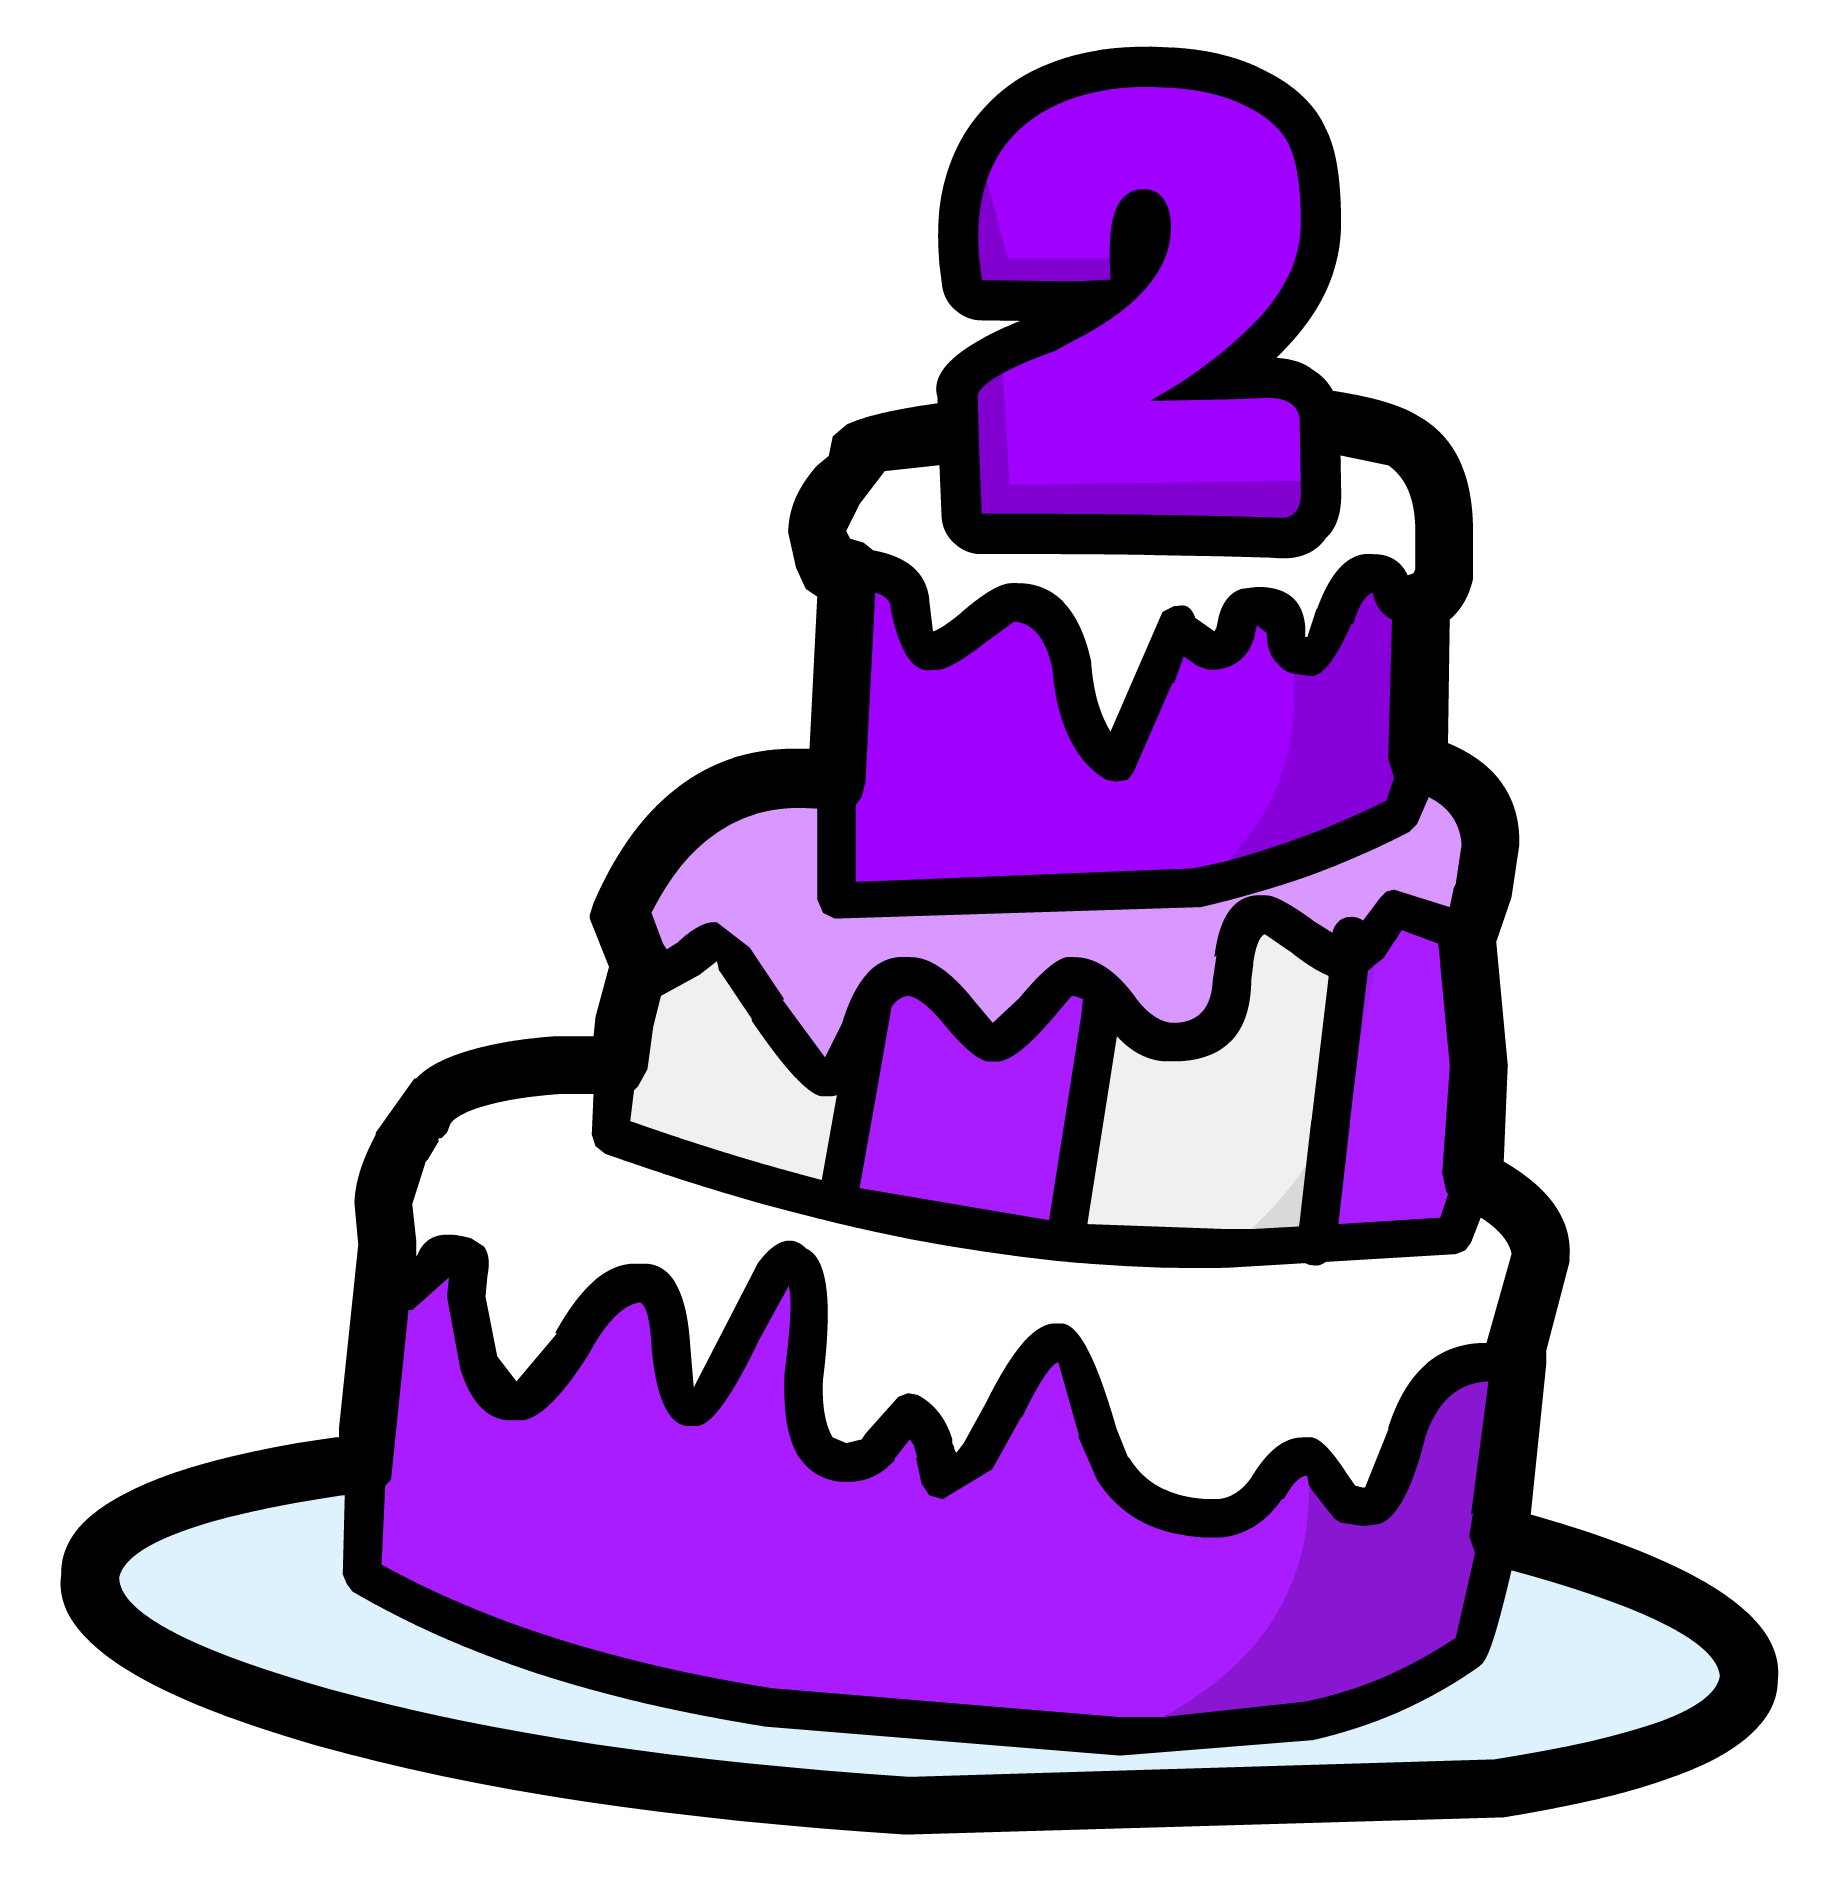 2nd Anniversary Cake Pin Club Penguin Rewritten Wiki Fandom